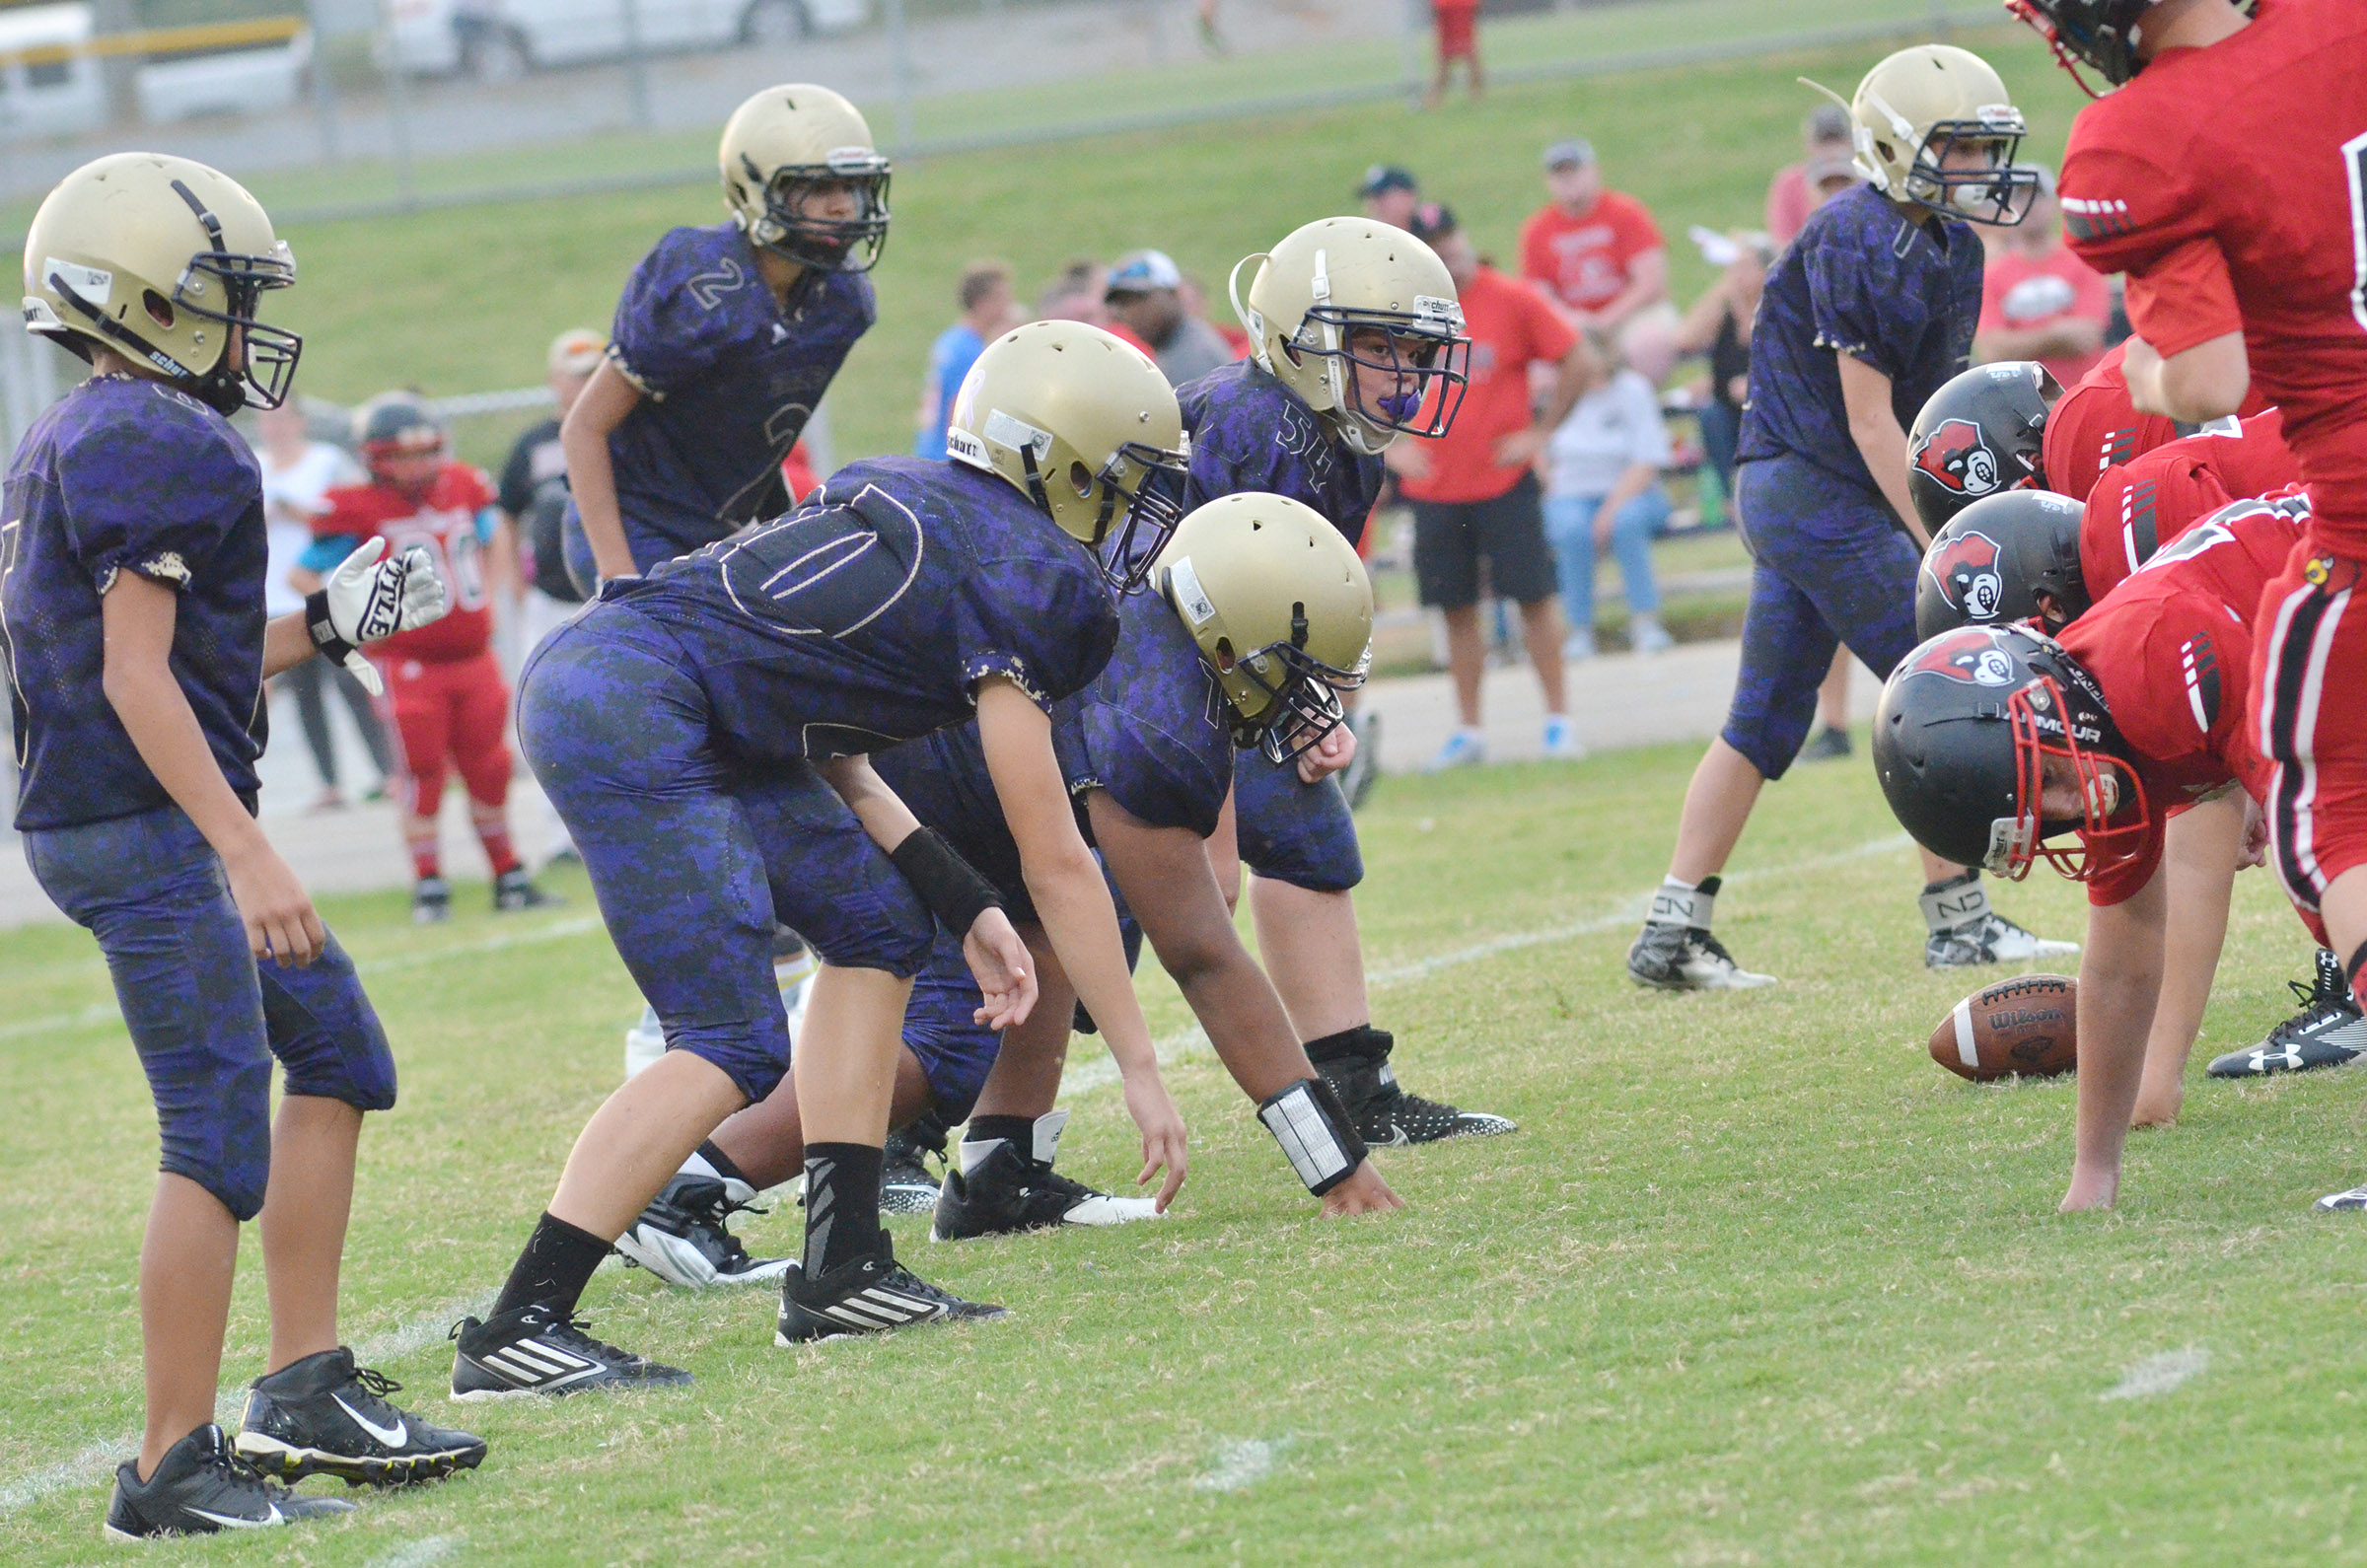 CMS defensive line players get set.